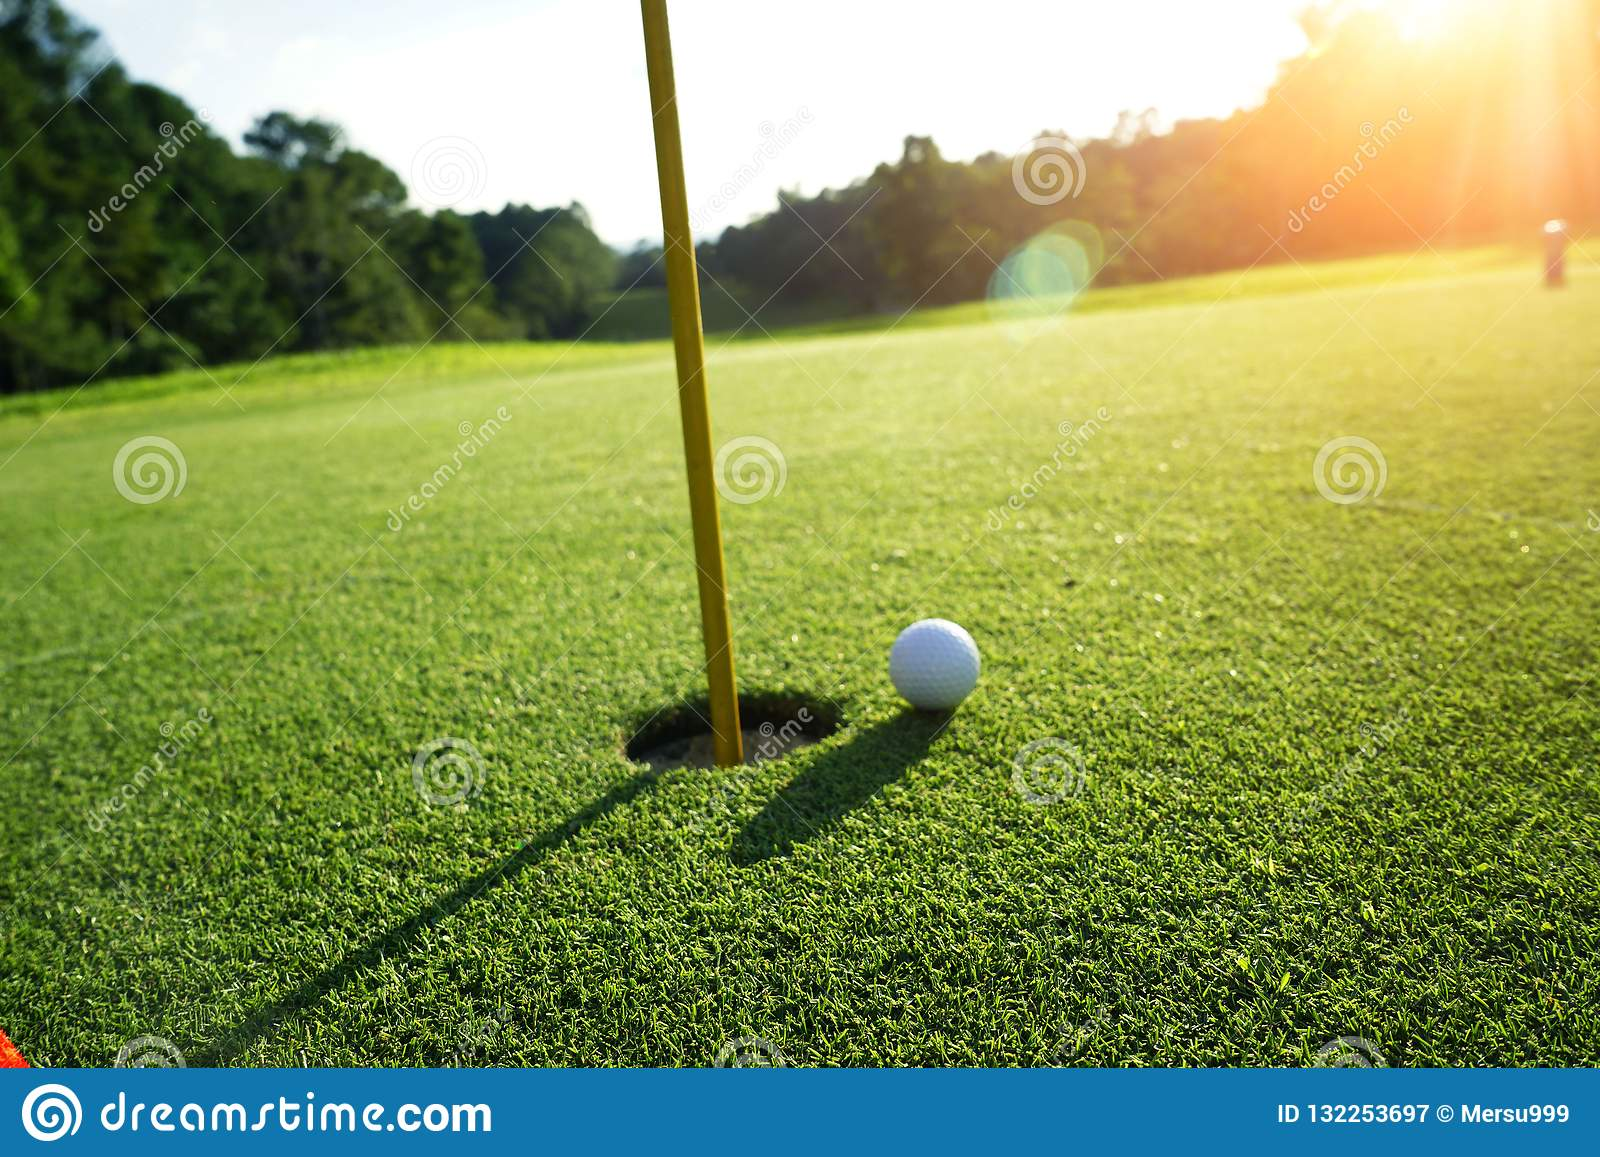 Golf ball on the edge of hole on the green grass